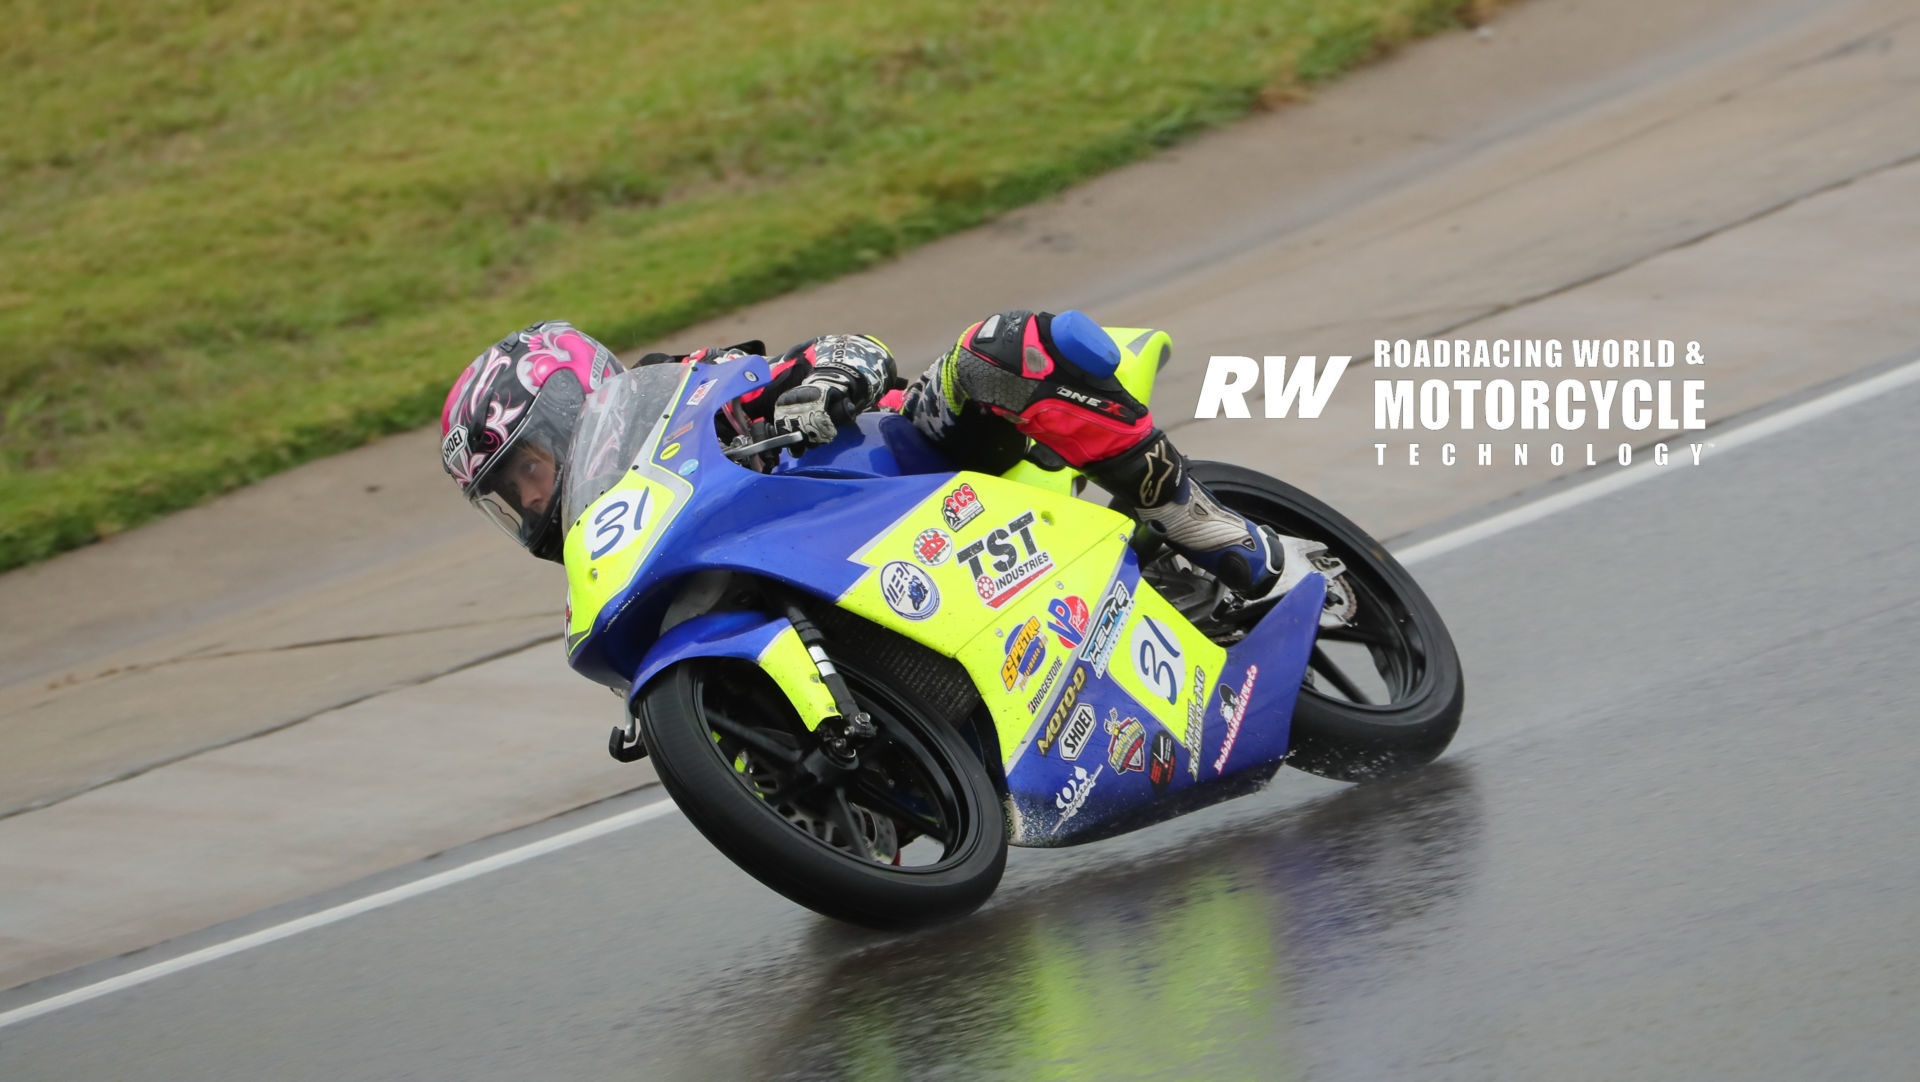 Kayla Yaakov (31) in action during a wet race at the 2019 WERA Grand National Finals (GNF) at Barber Motorsports Park. Photo by Brian J. Nelson.